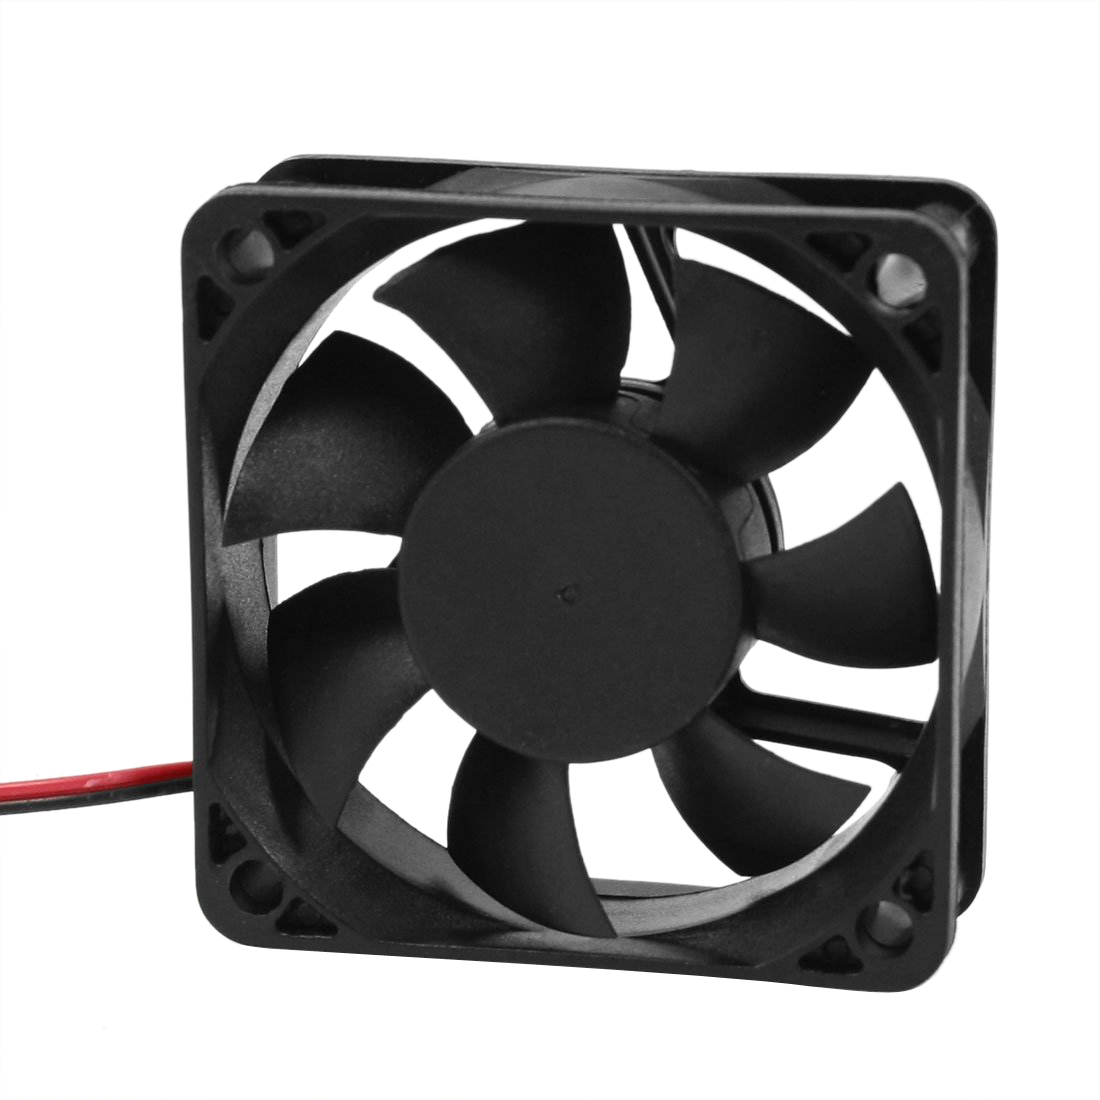 GTFS-Hot Sale DC 12V 2Pins Cooling Fan 60mm x 15mm for PC Computer Case CPU Cooler personal computer graphics cards fan cooler replacements fit for pc graphics cards cooling fan 12v 0 1a graphic fan